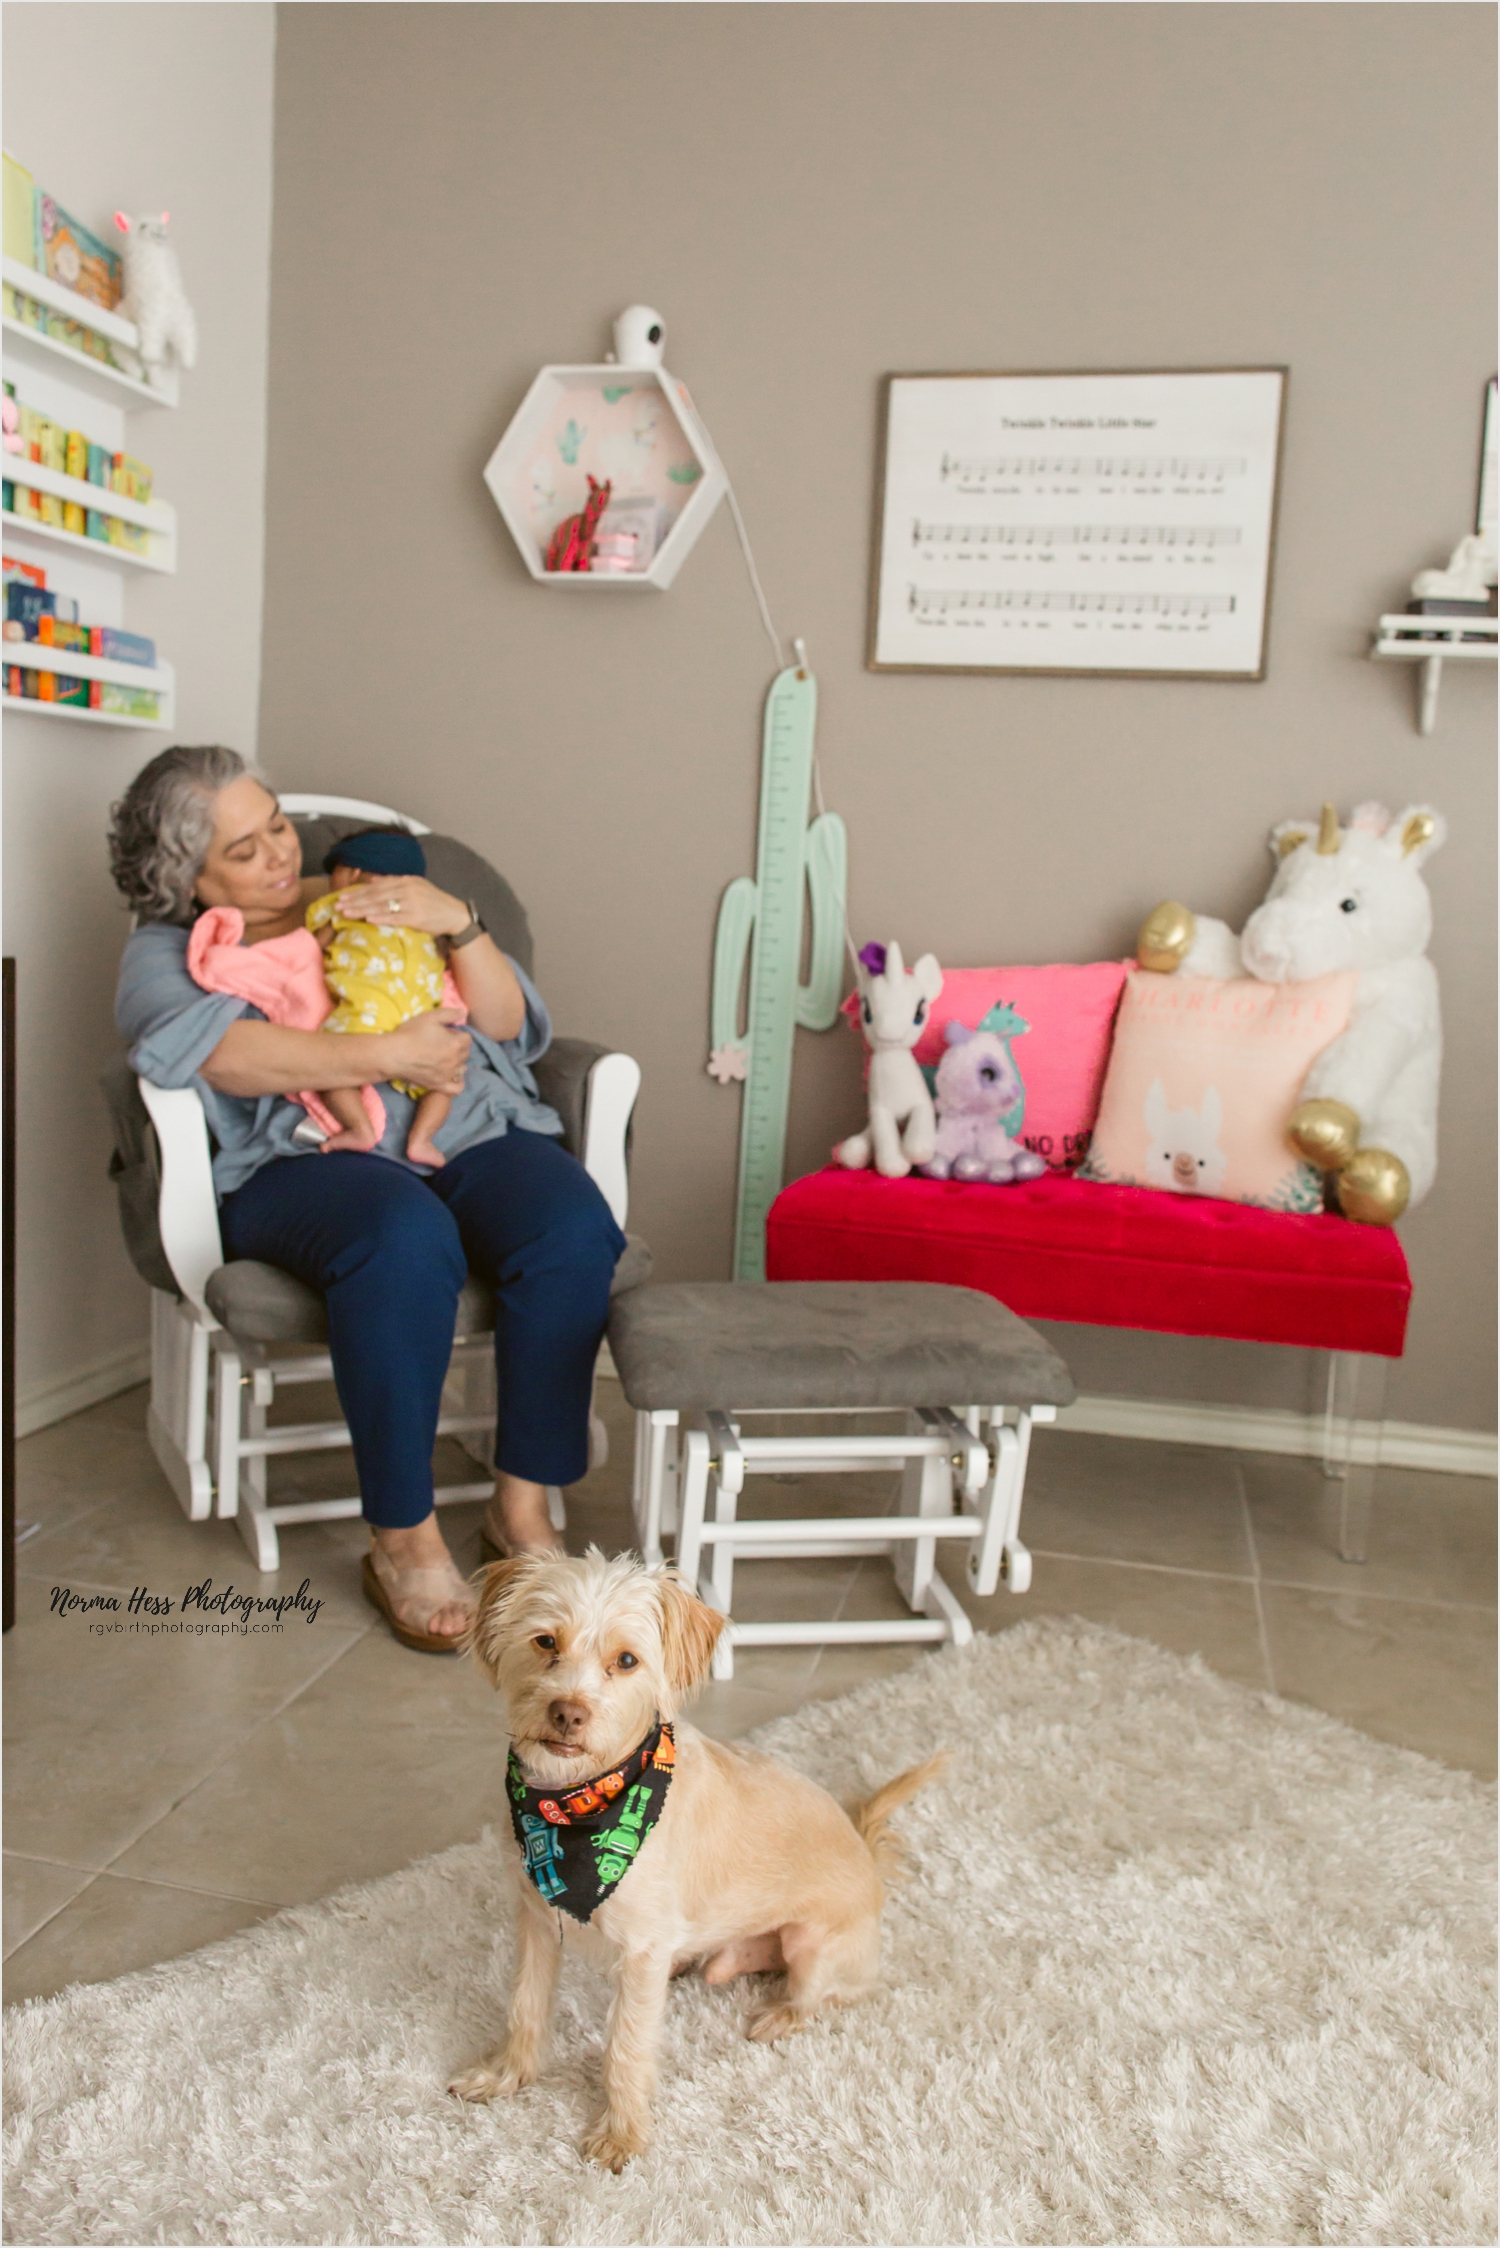 Including your family pet in your family session is so easy with lifestyle in-home sessions. Big brother (Odie) patiently waits for Grandma to burp little sister. | Photo by Norma Hess sojourningbirth.com